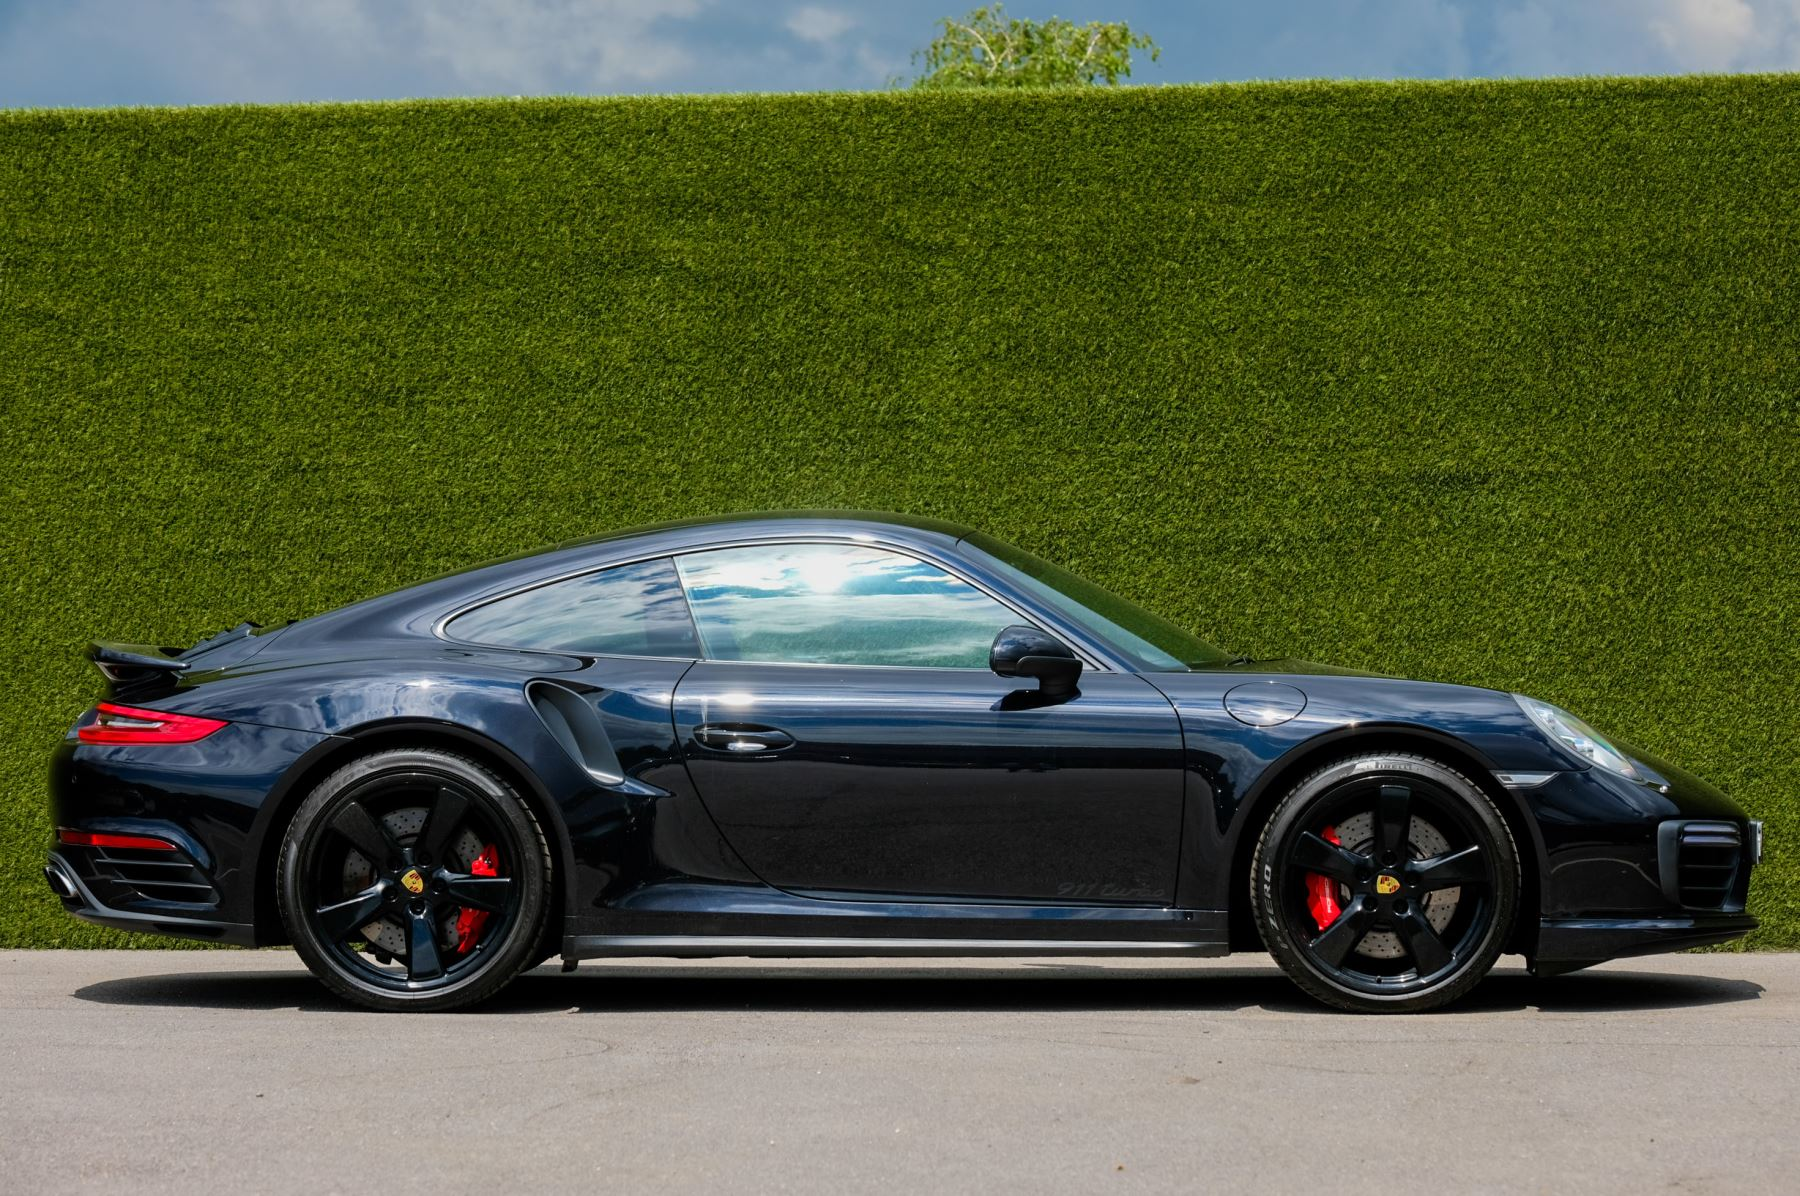 Porsche 911 PDK - Carbon interior package - Privacy Glass - 20 inch Sport Classic wheels image 3